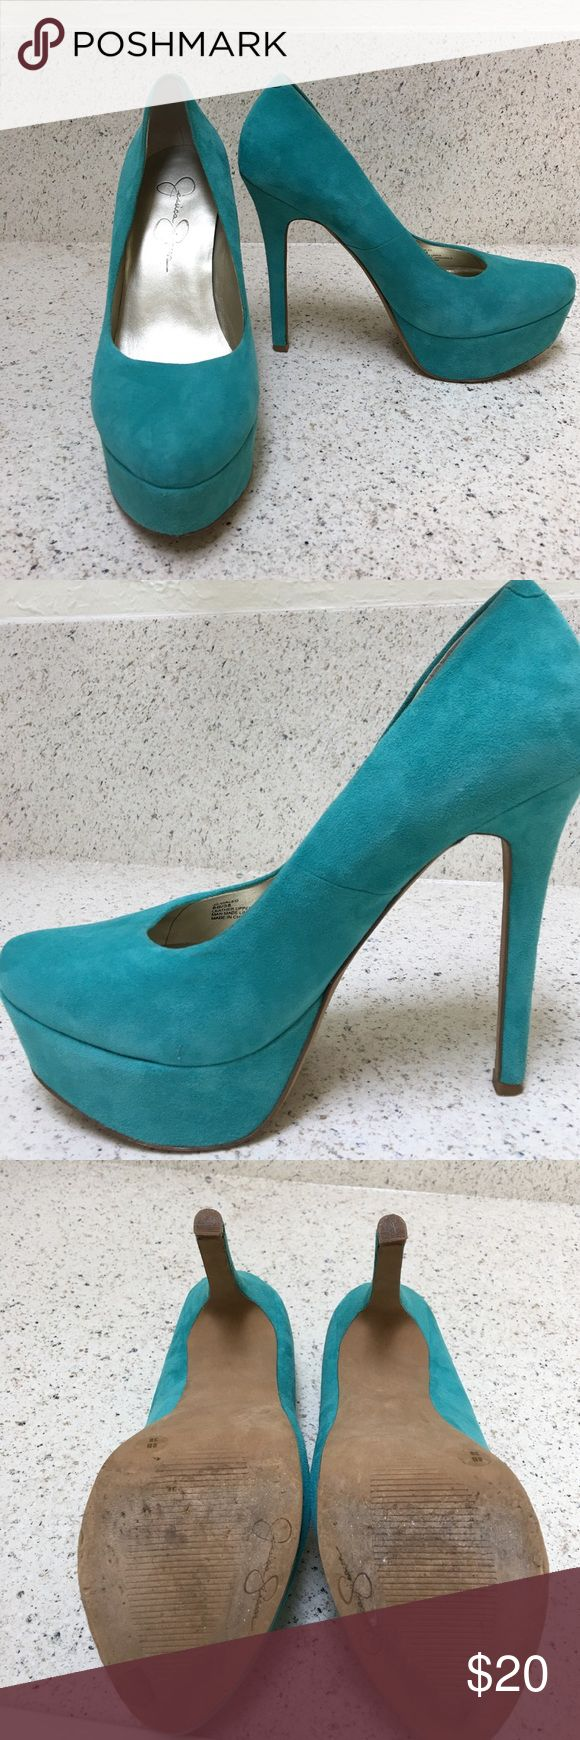 Jessica Simpson Teal High Heels Size 8, worn once to a wedding, great condition Jessica Simpson Shoes Heels